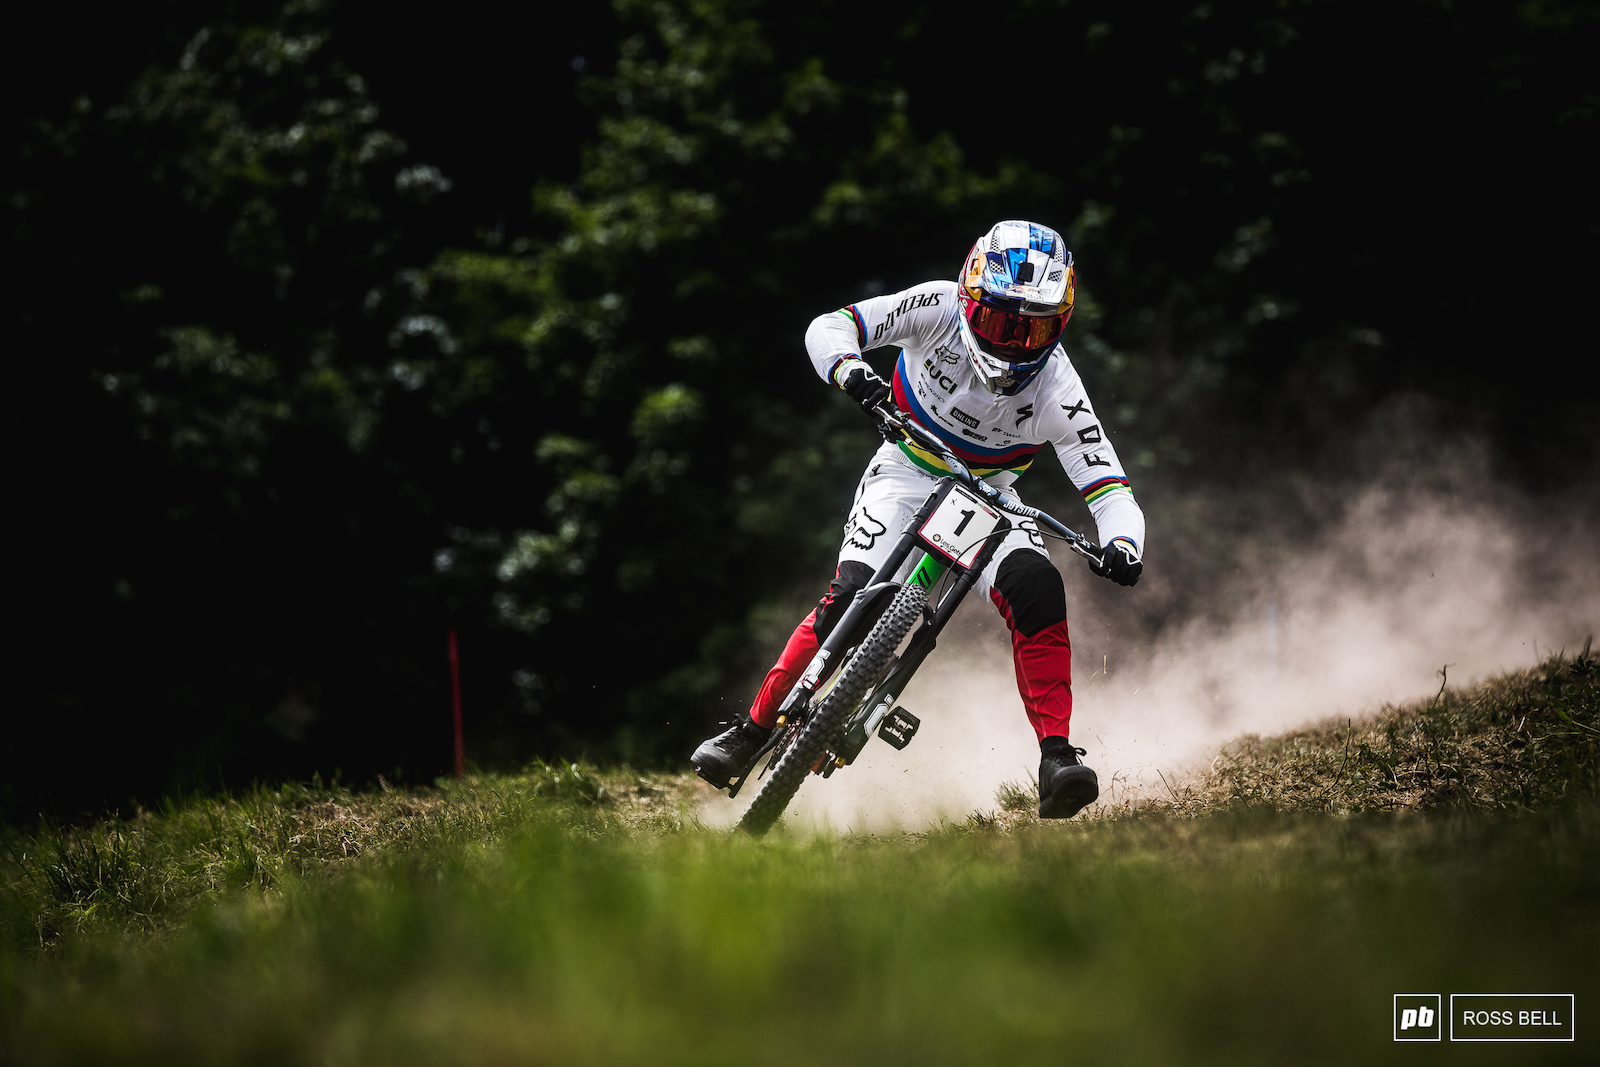 Foot out flat out for Loic Bruni on his way to a second place qualifier in Les Gets last season.